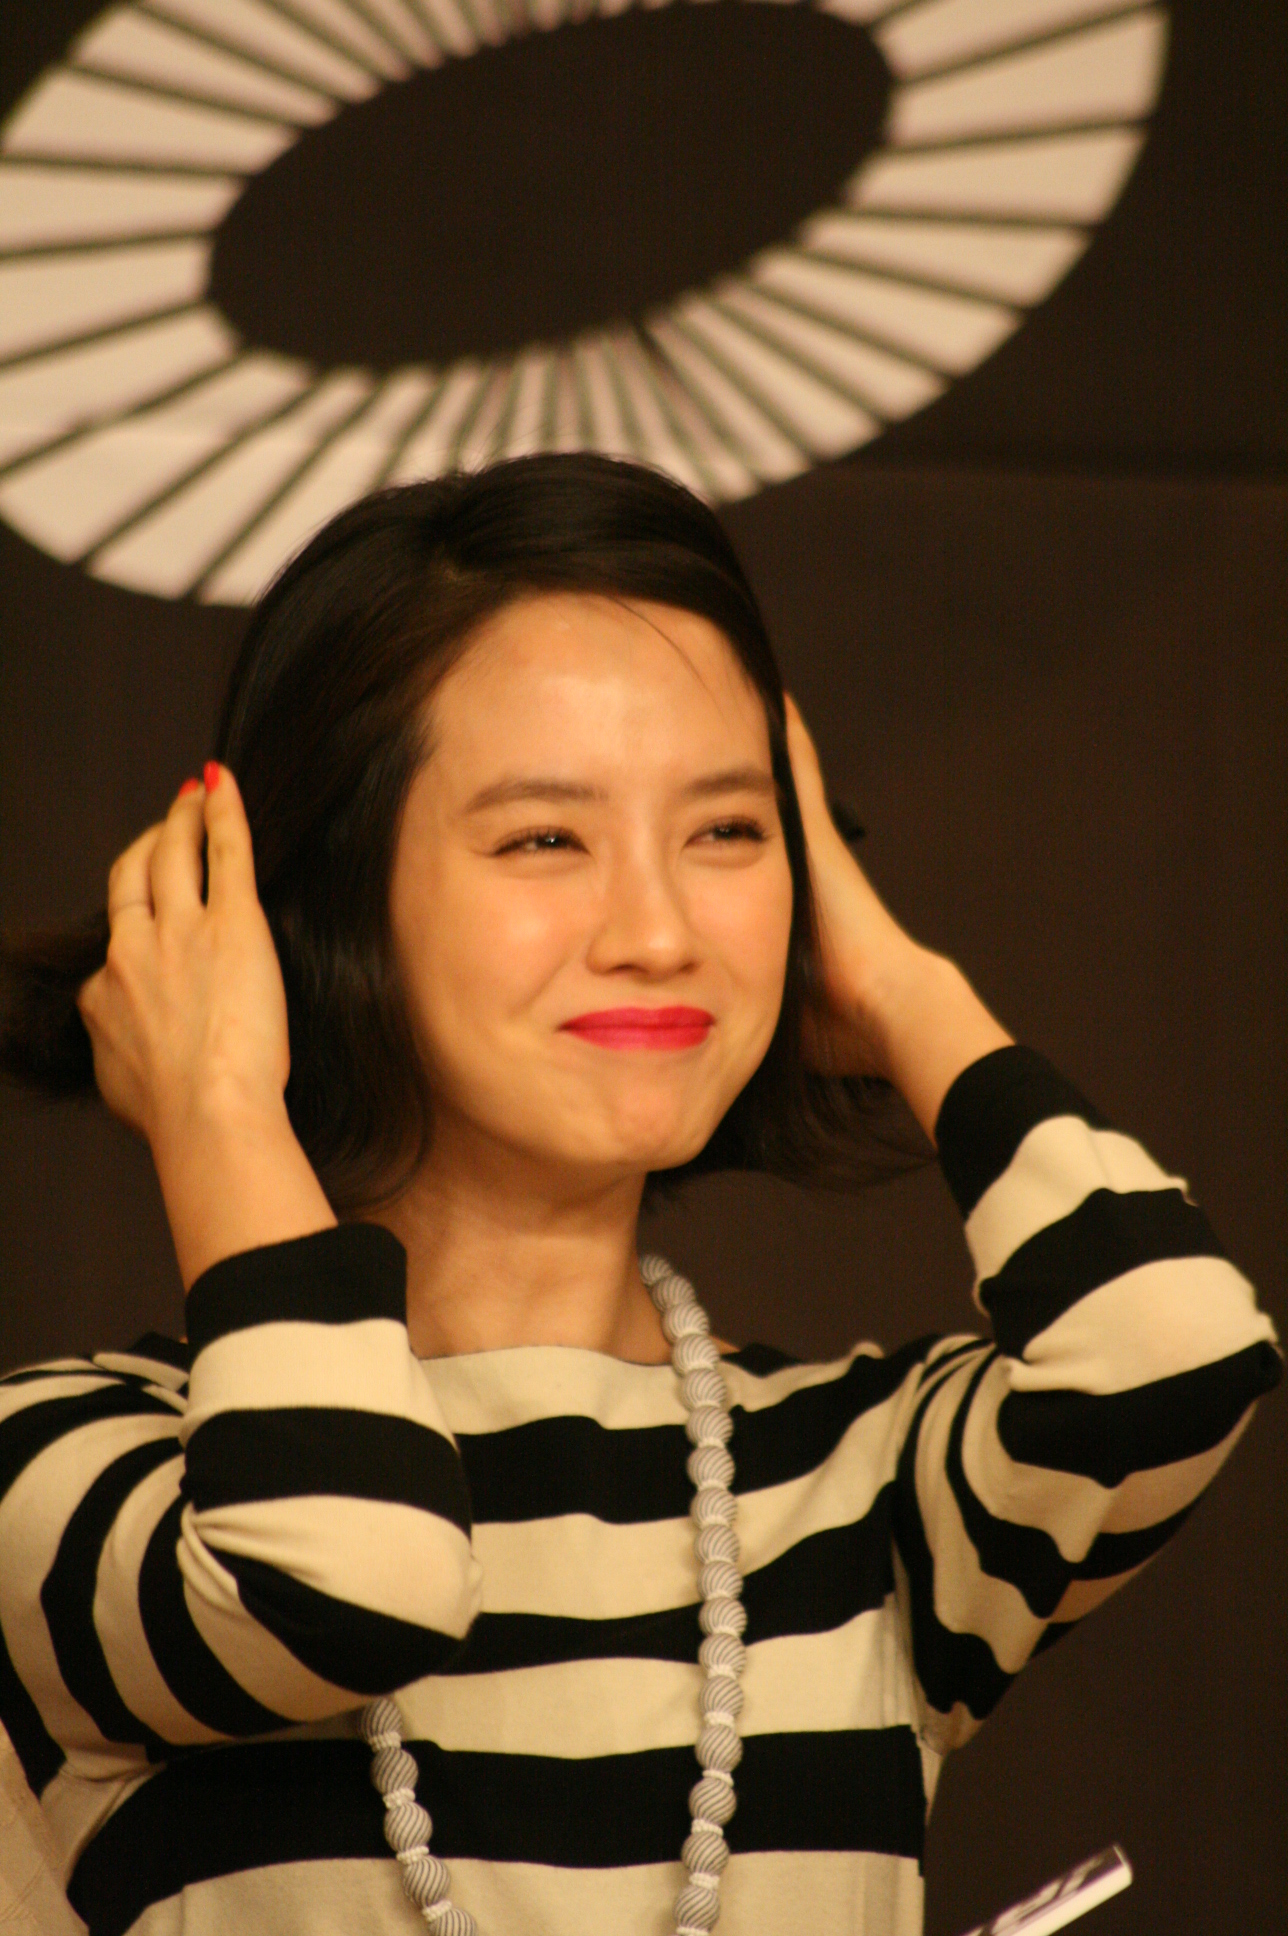 Song ji hyo frozen flower - 3 part 6